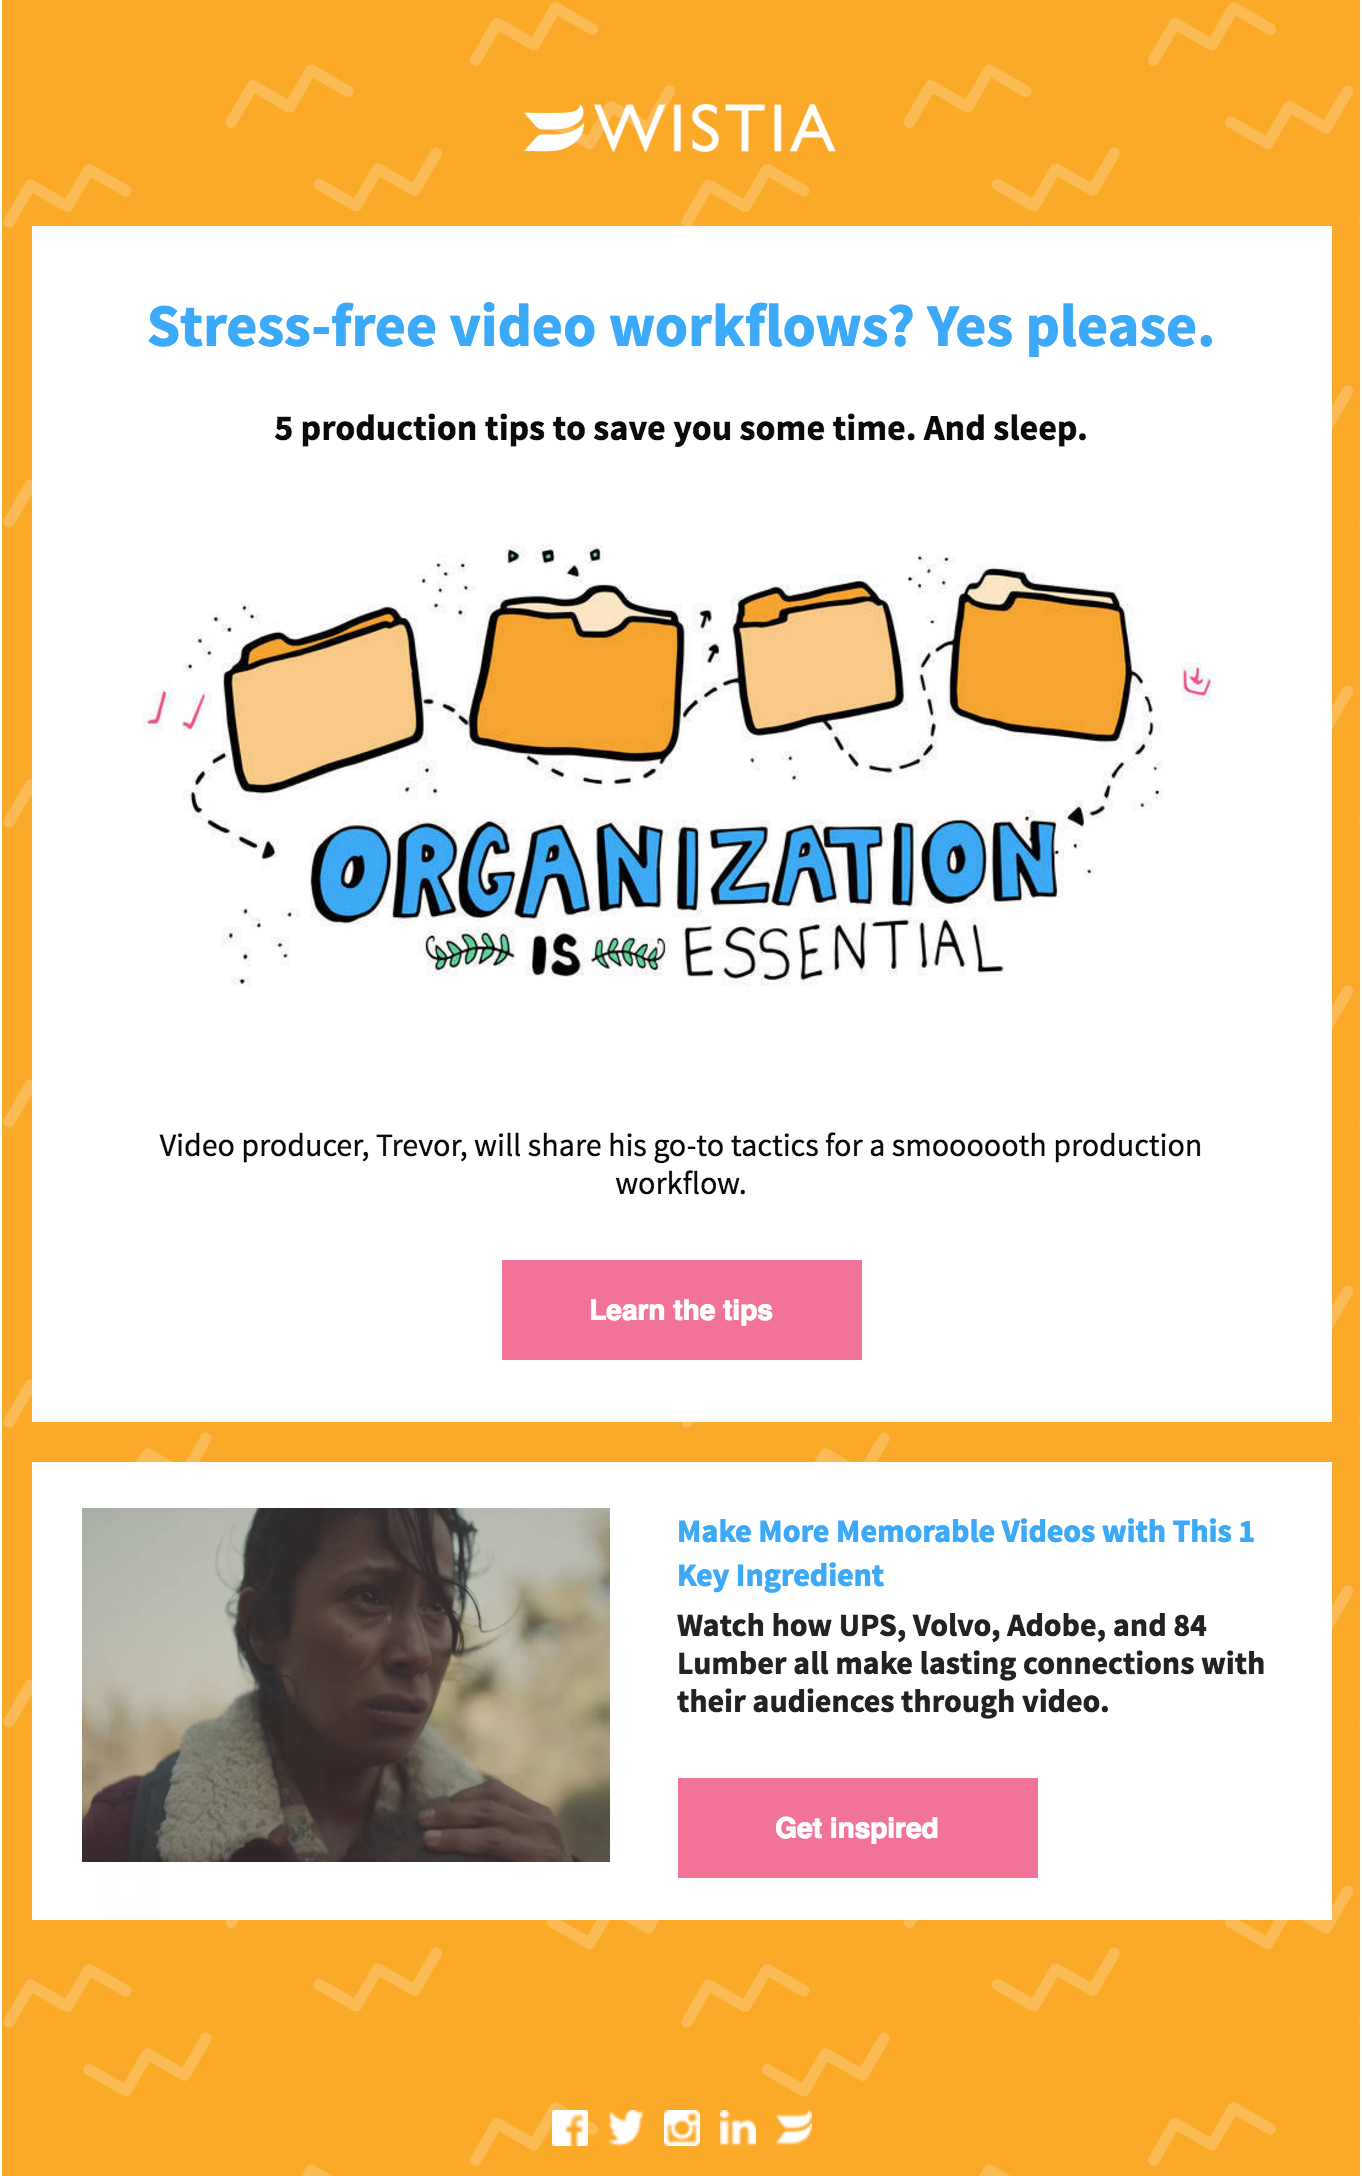 10 of the Best Marketing Emails We've Seen This Year